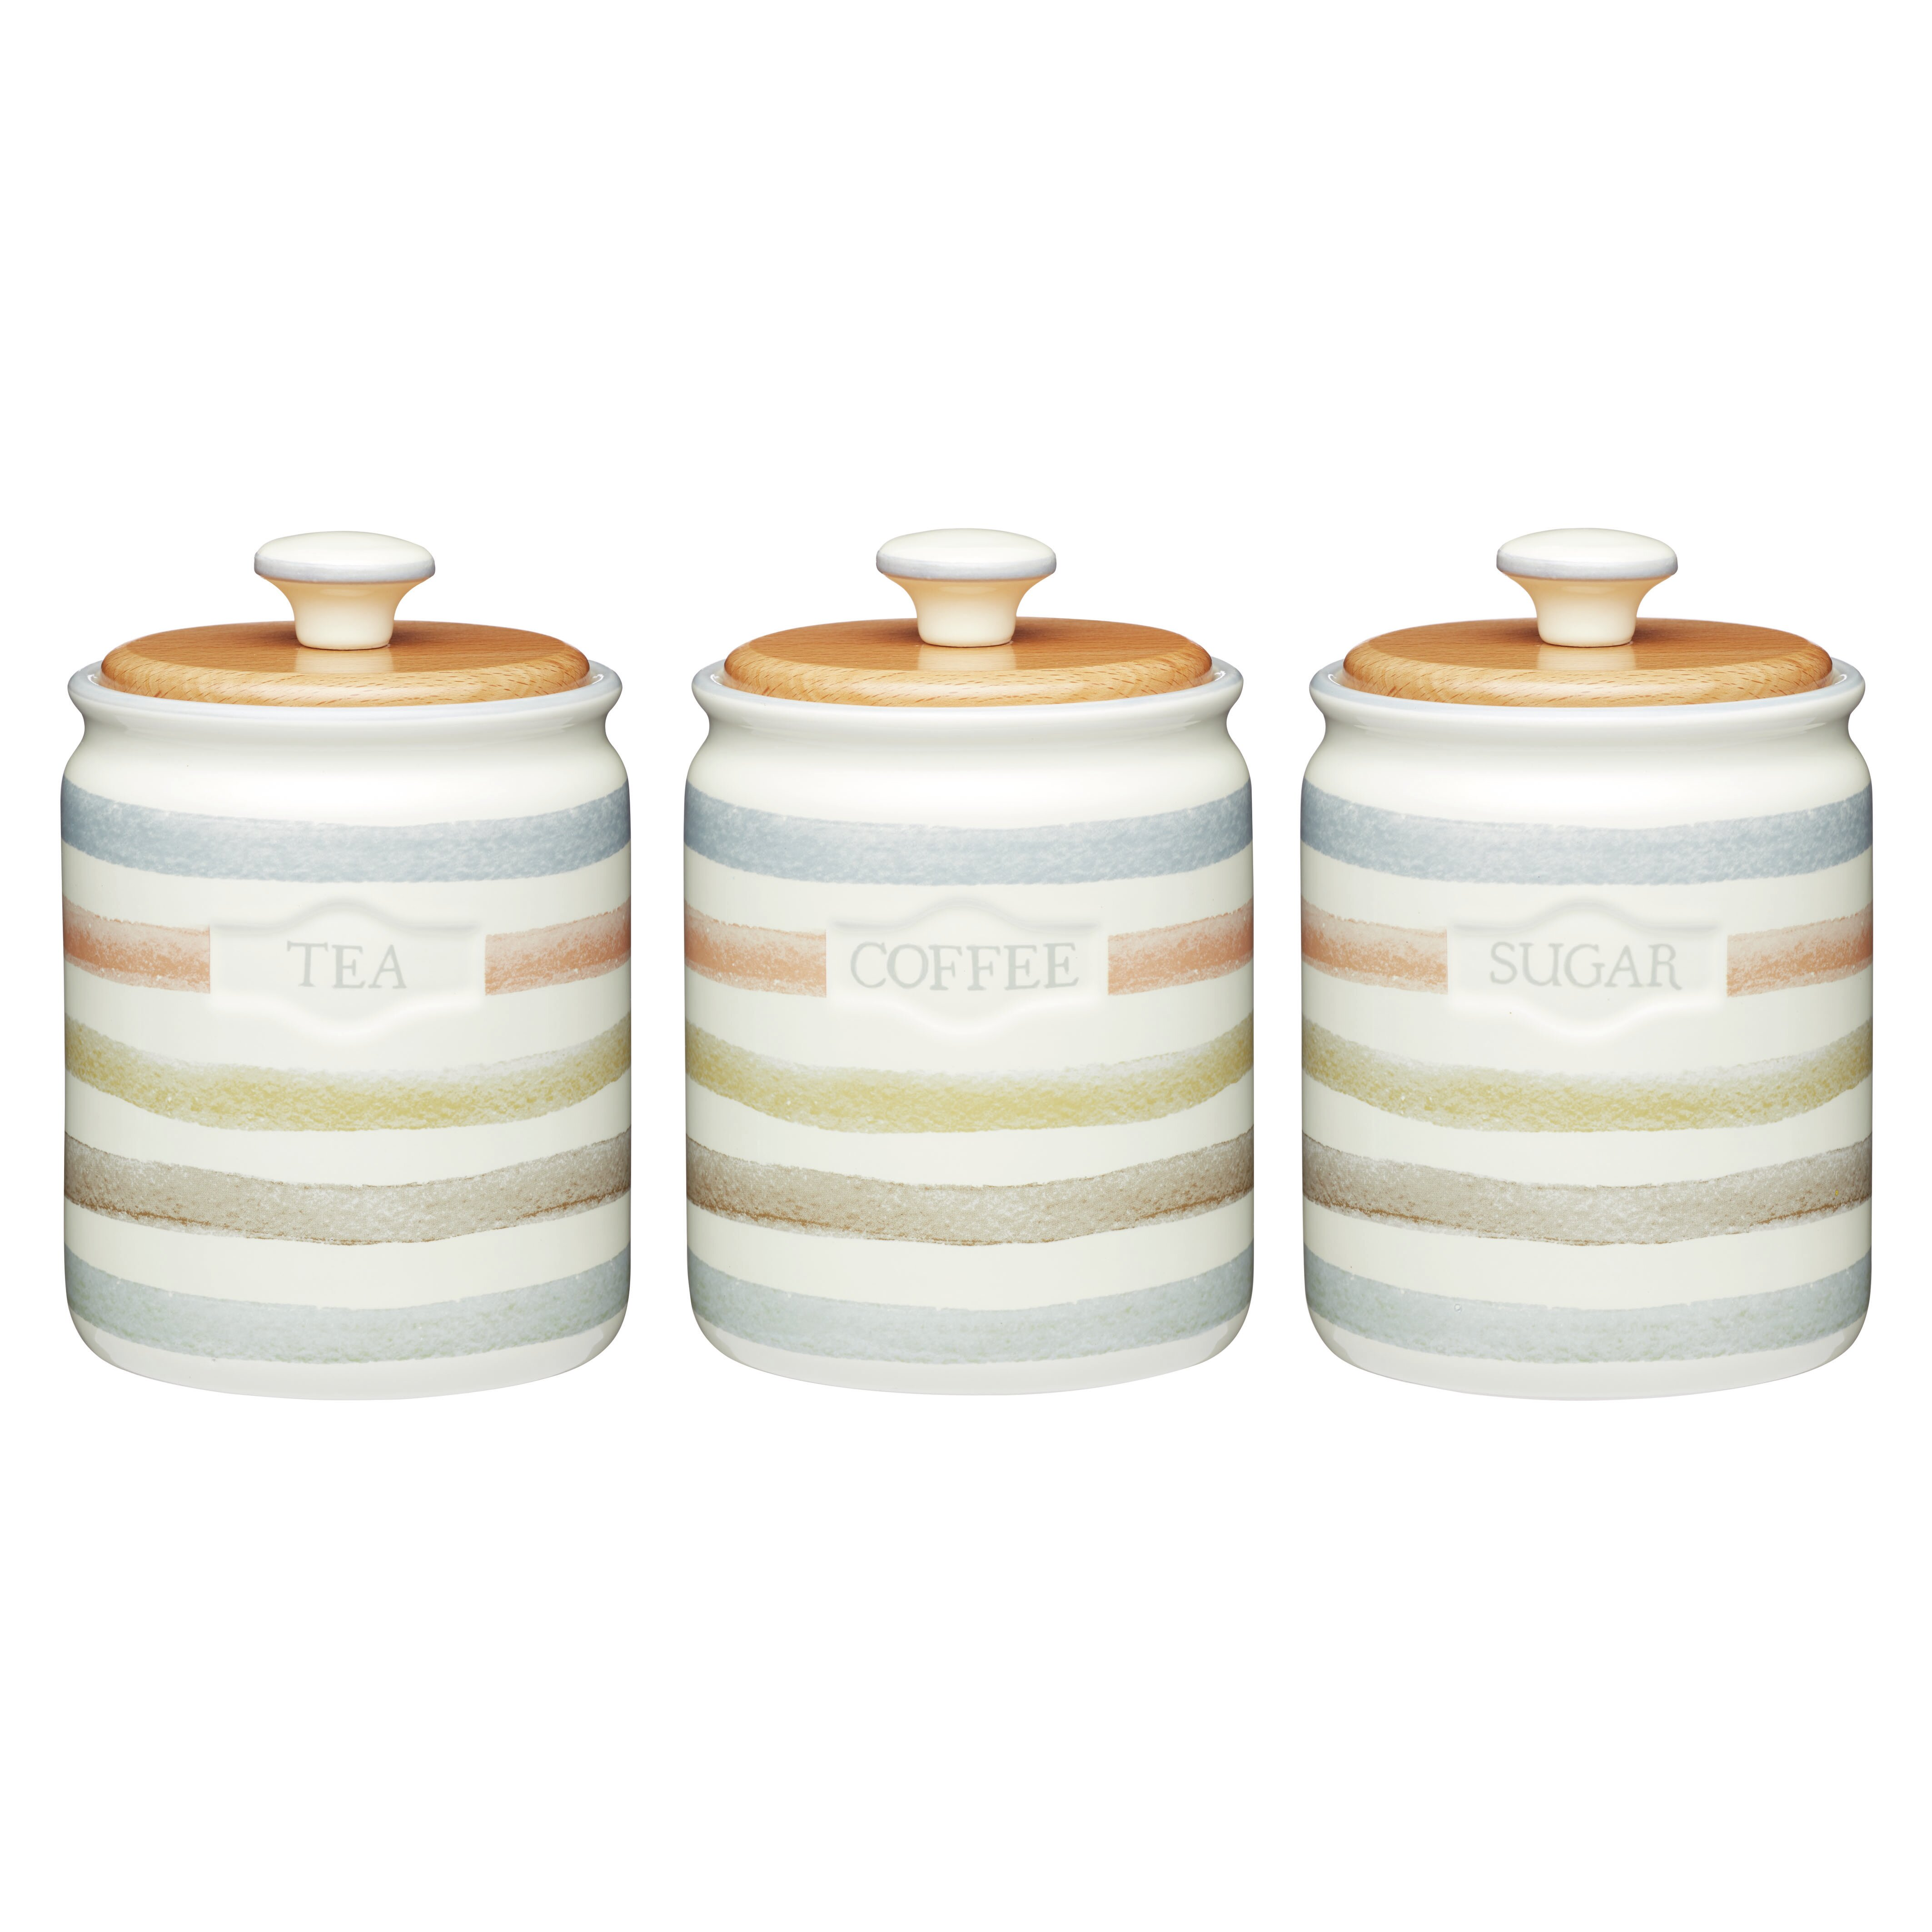 Set Of 3 Tea Coffee Sugar Kitchen Storage Canisters Jars Pots Gl Fronted Stainless